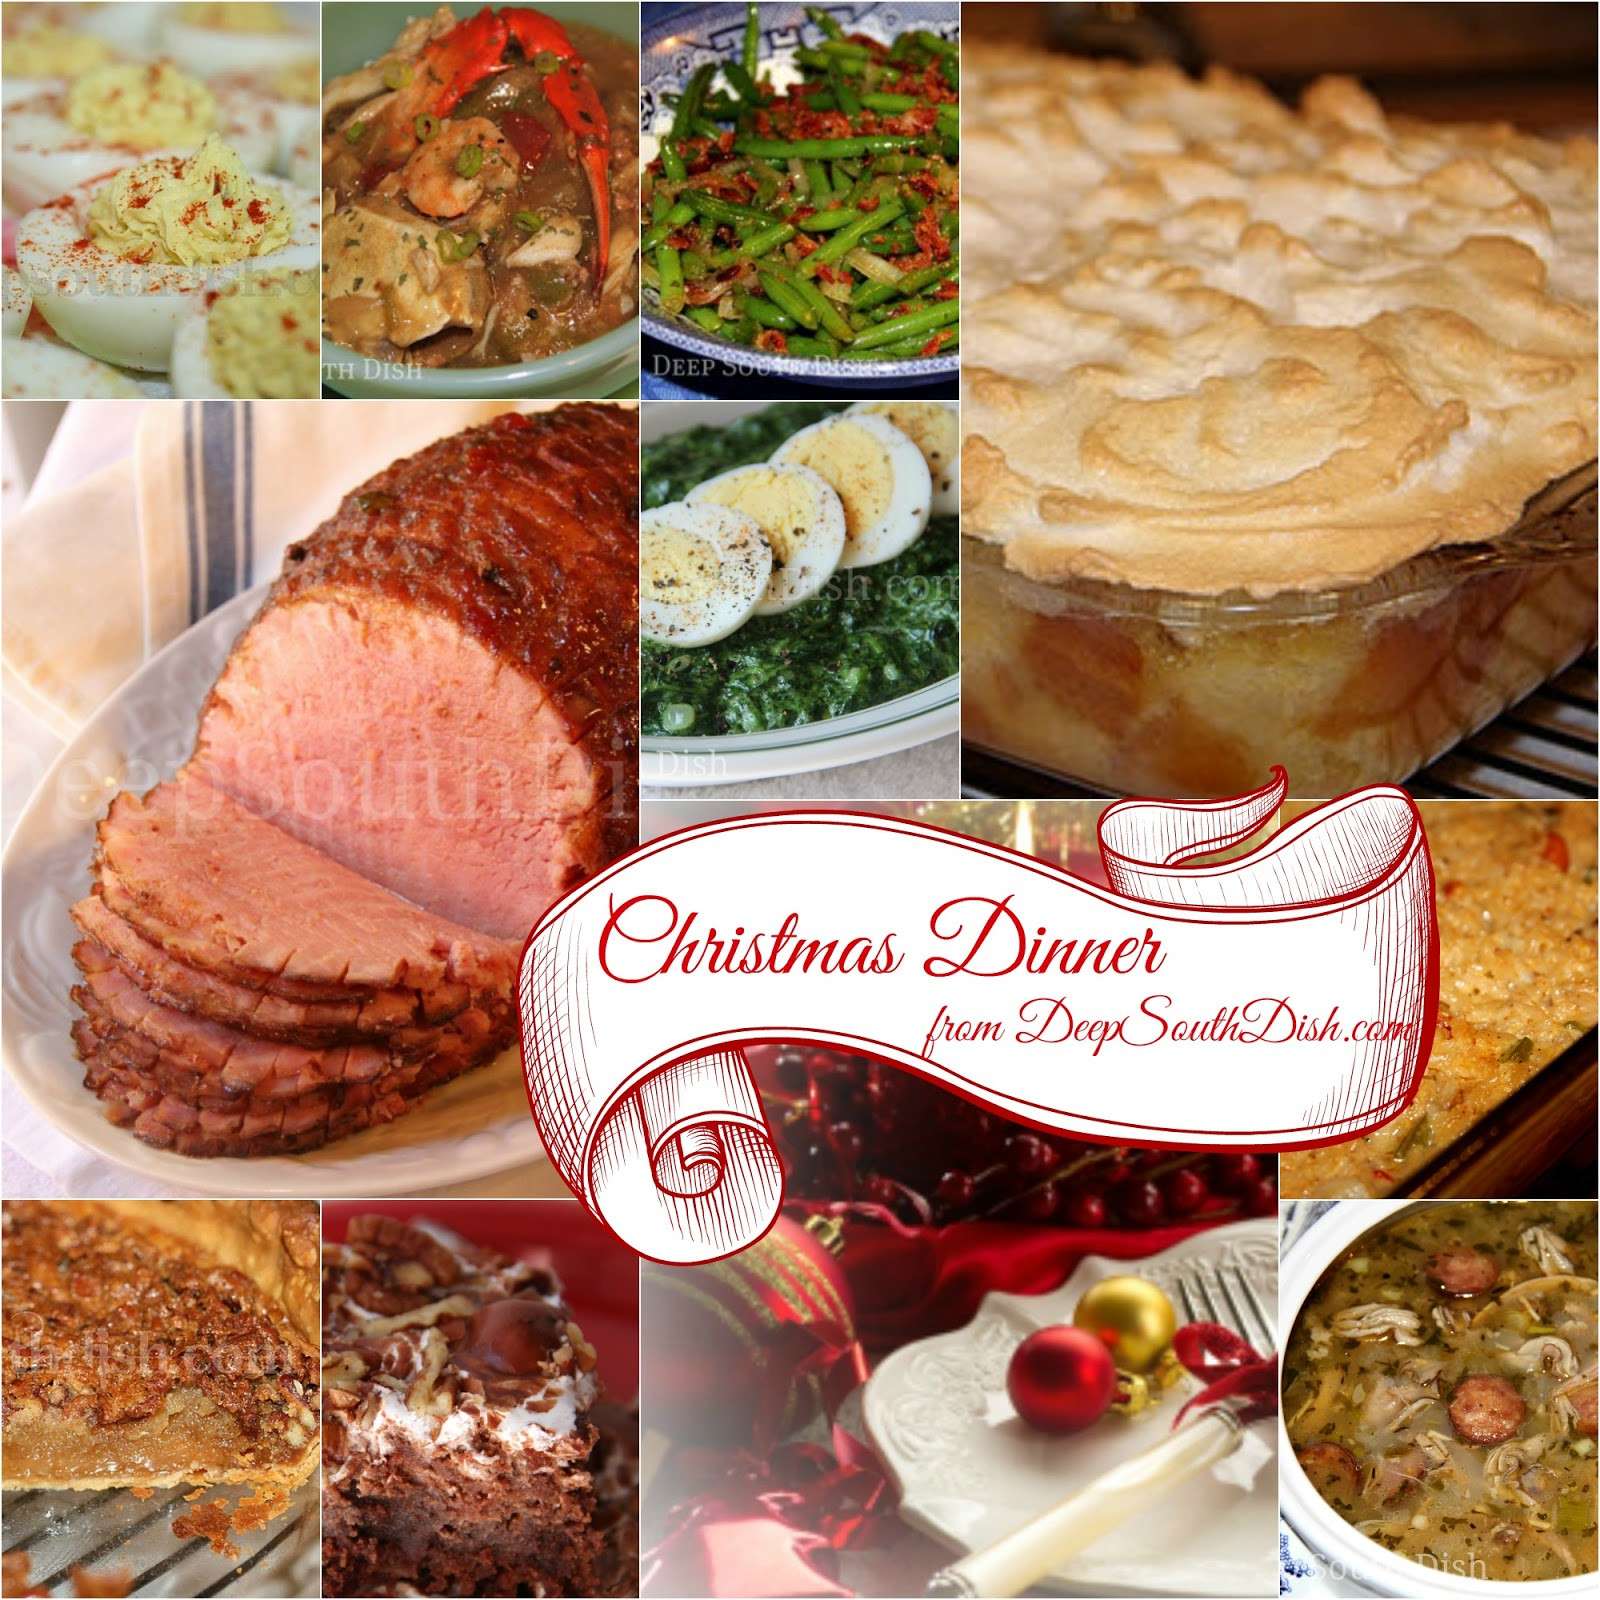 Soul Food Christmas Dinner Menu  Deep South Dish Southern Christmas Dinner Menu and Recipe